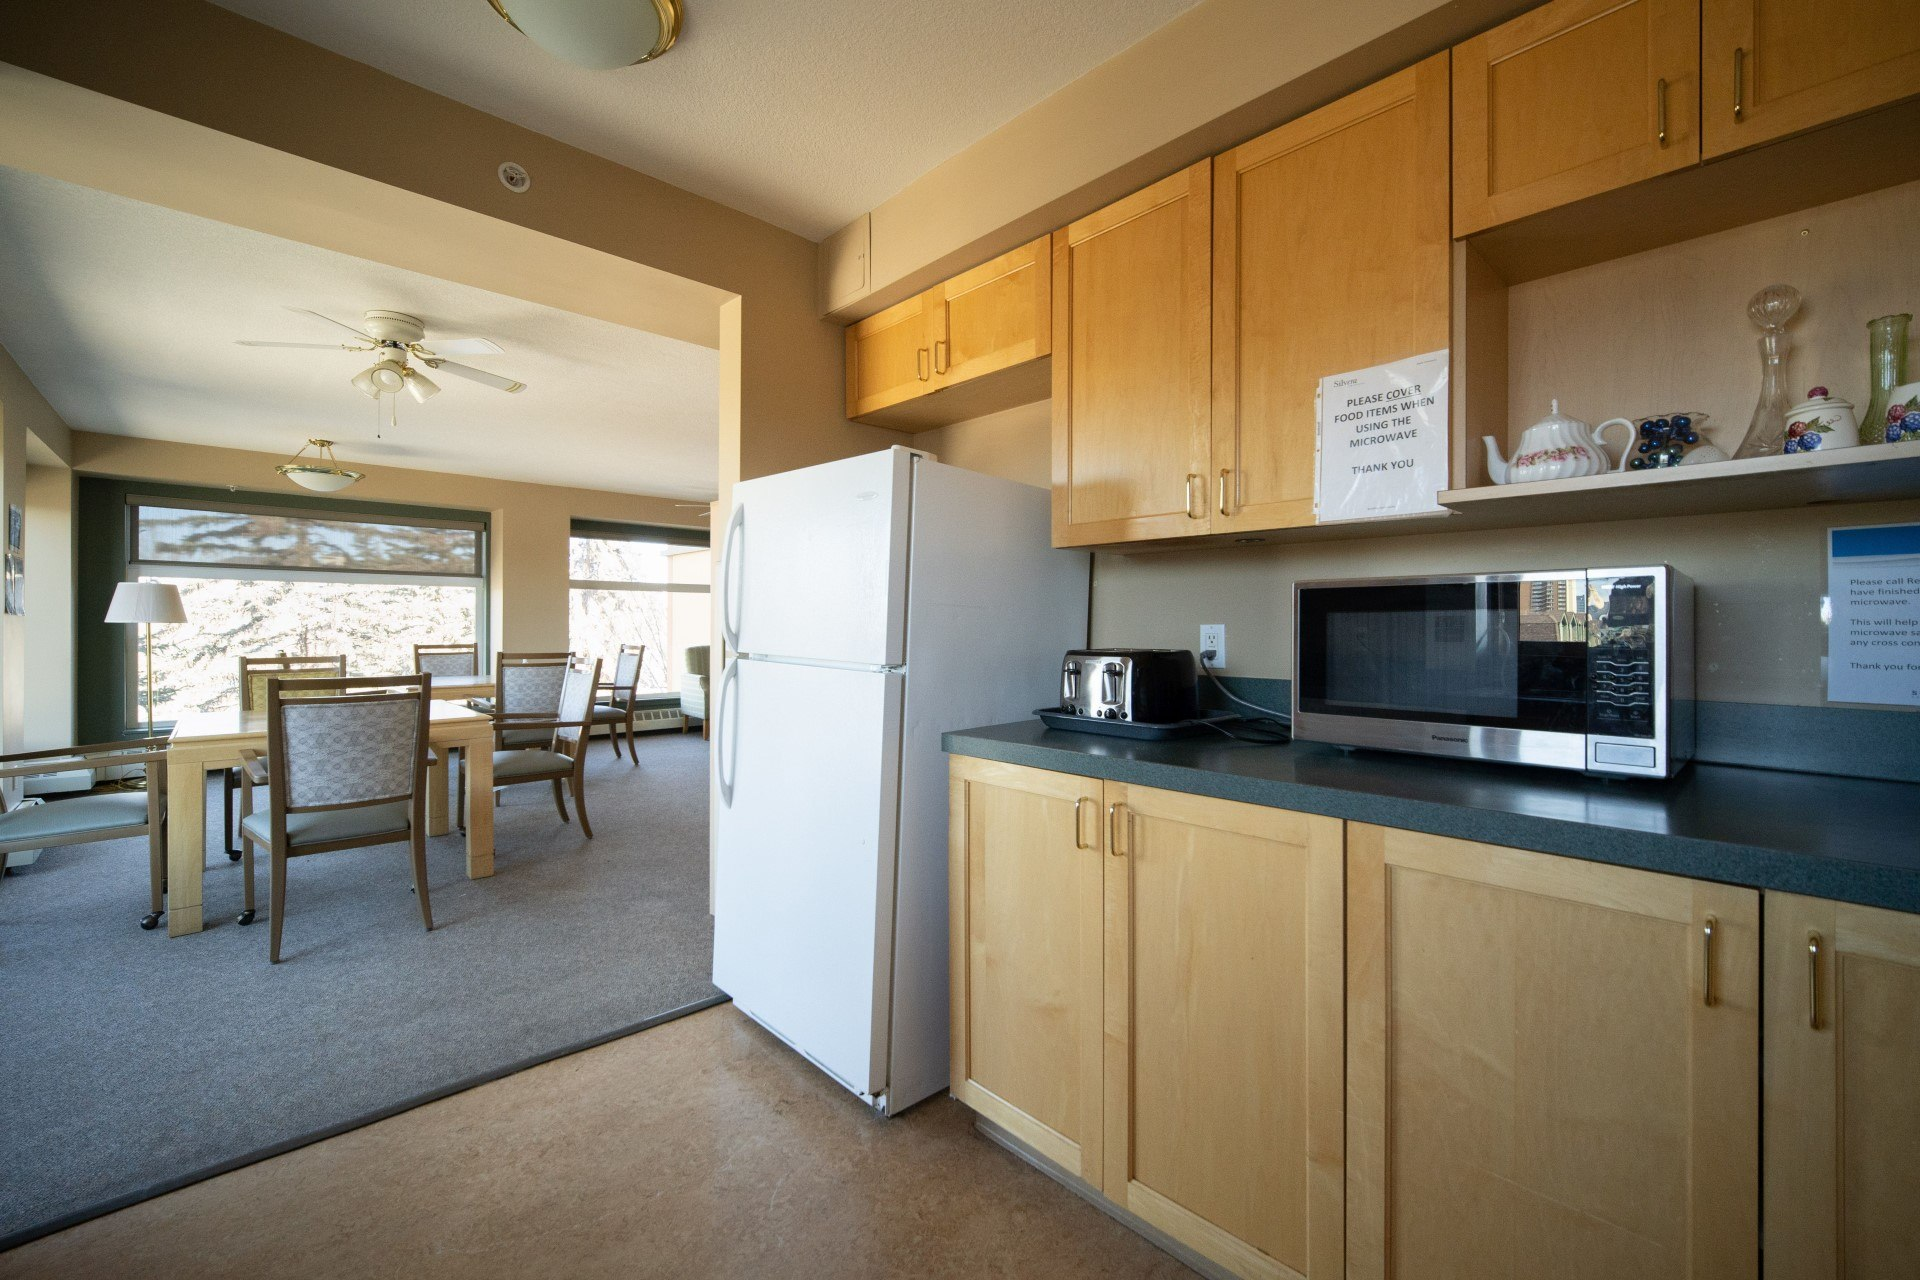 full shared kitchen for  friendly interactions